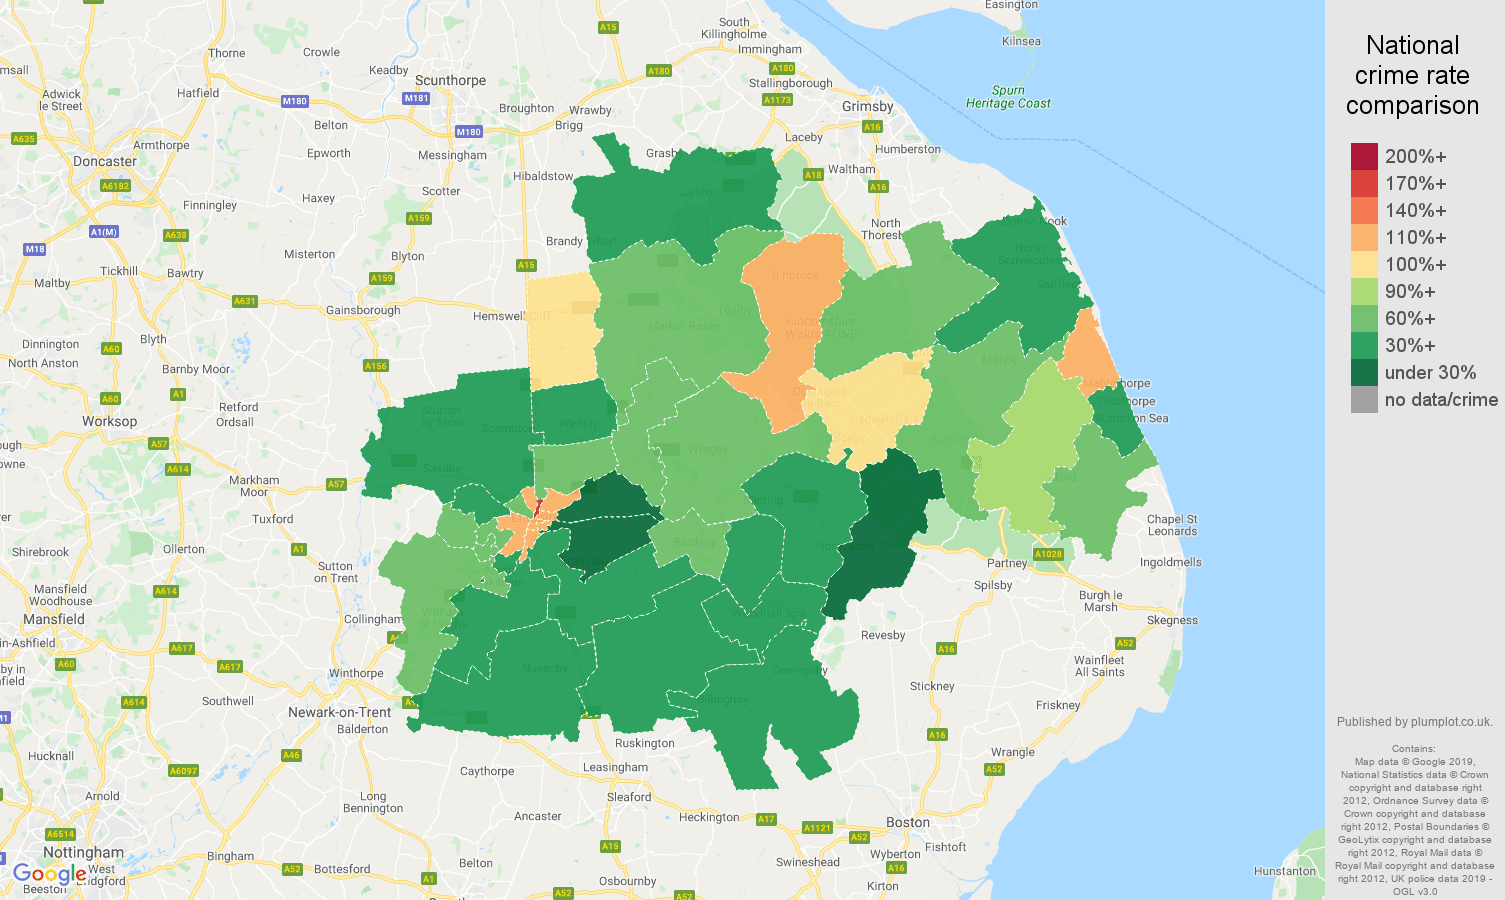 Lincoln other theft crime rate comparison map